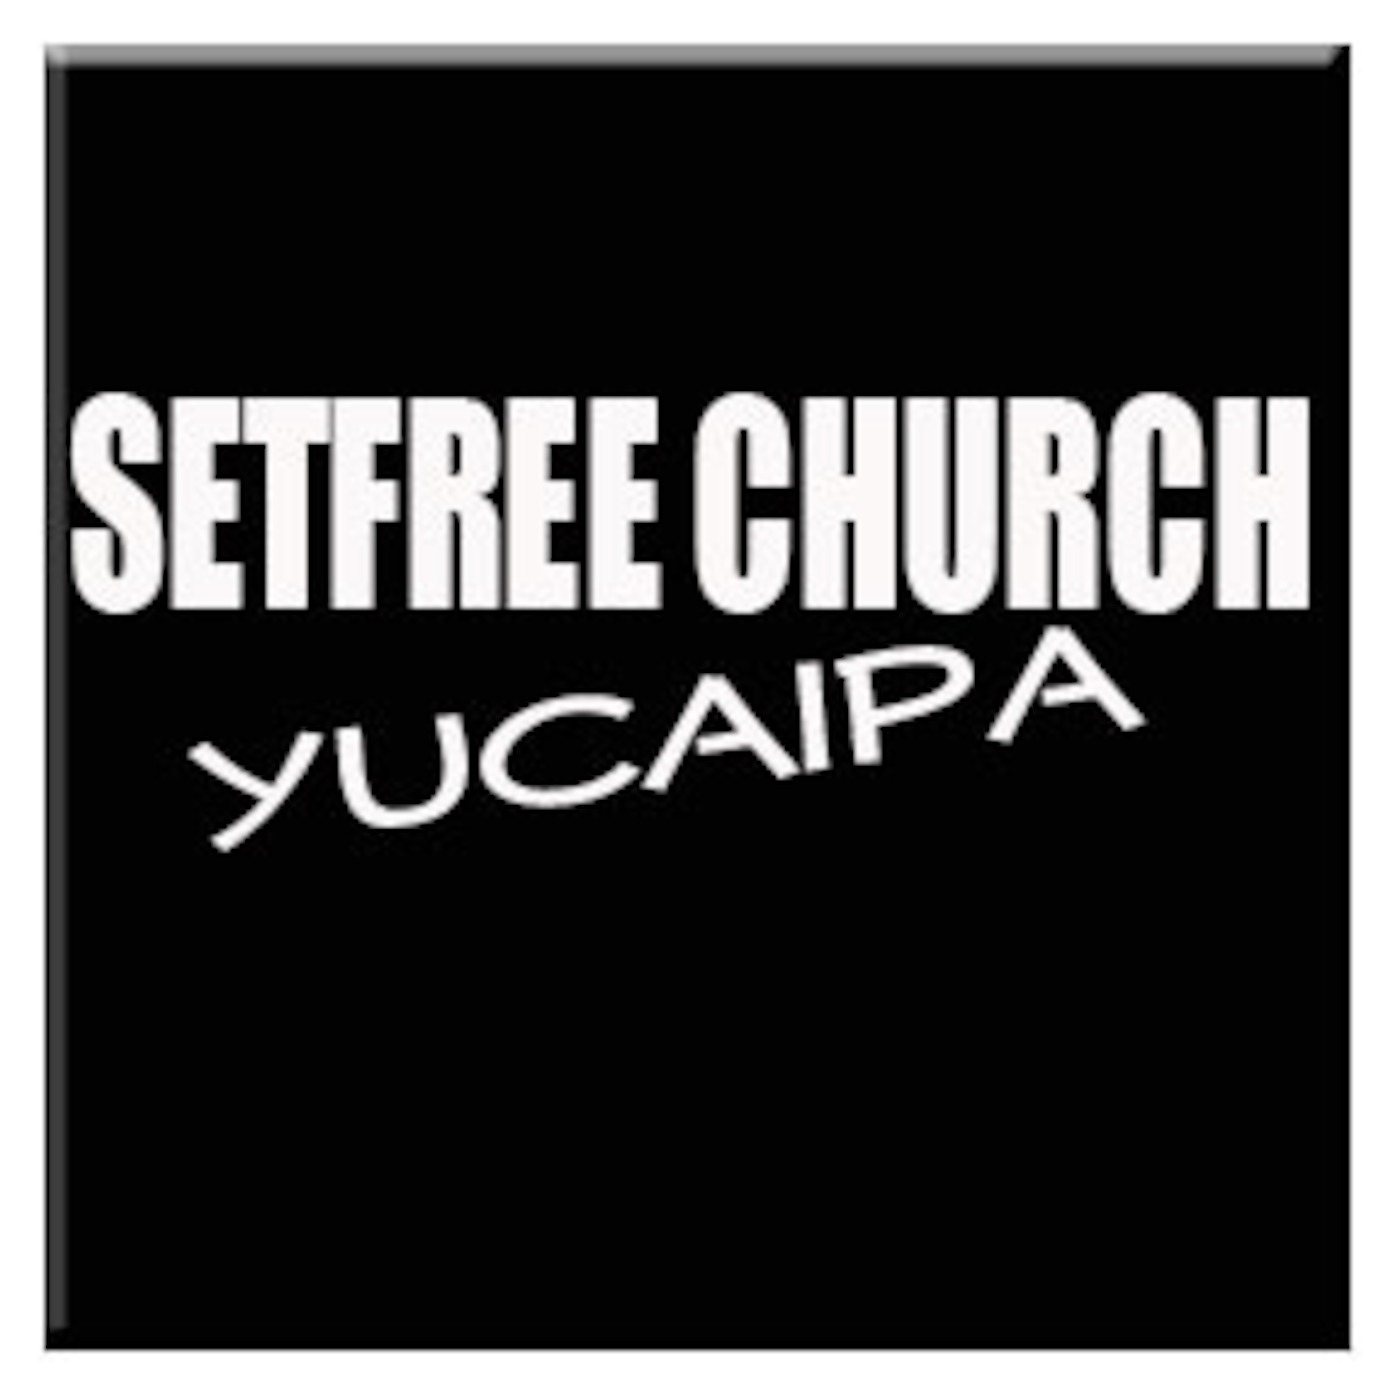 Set Free Church